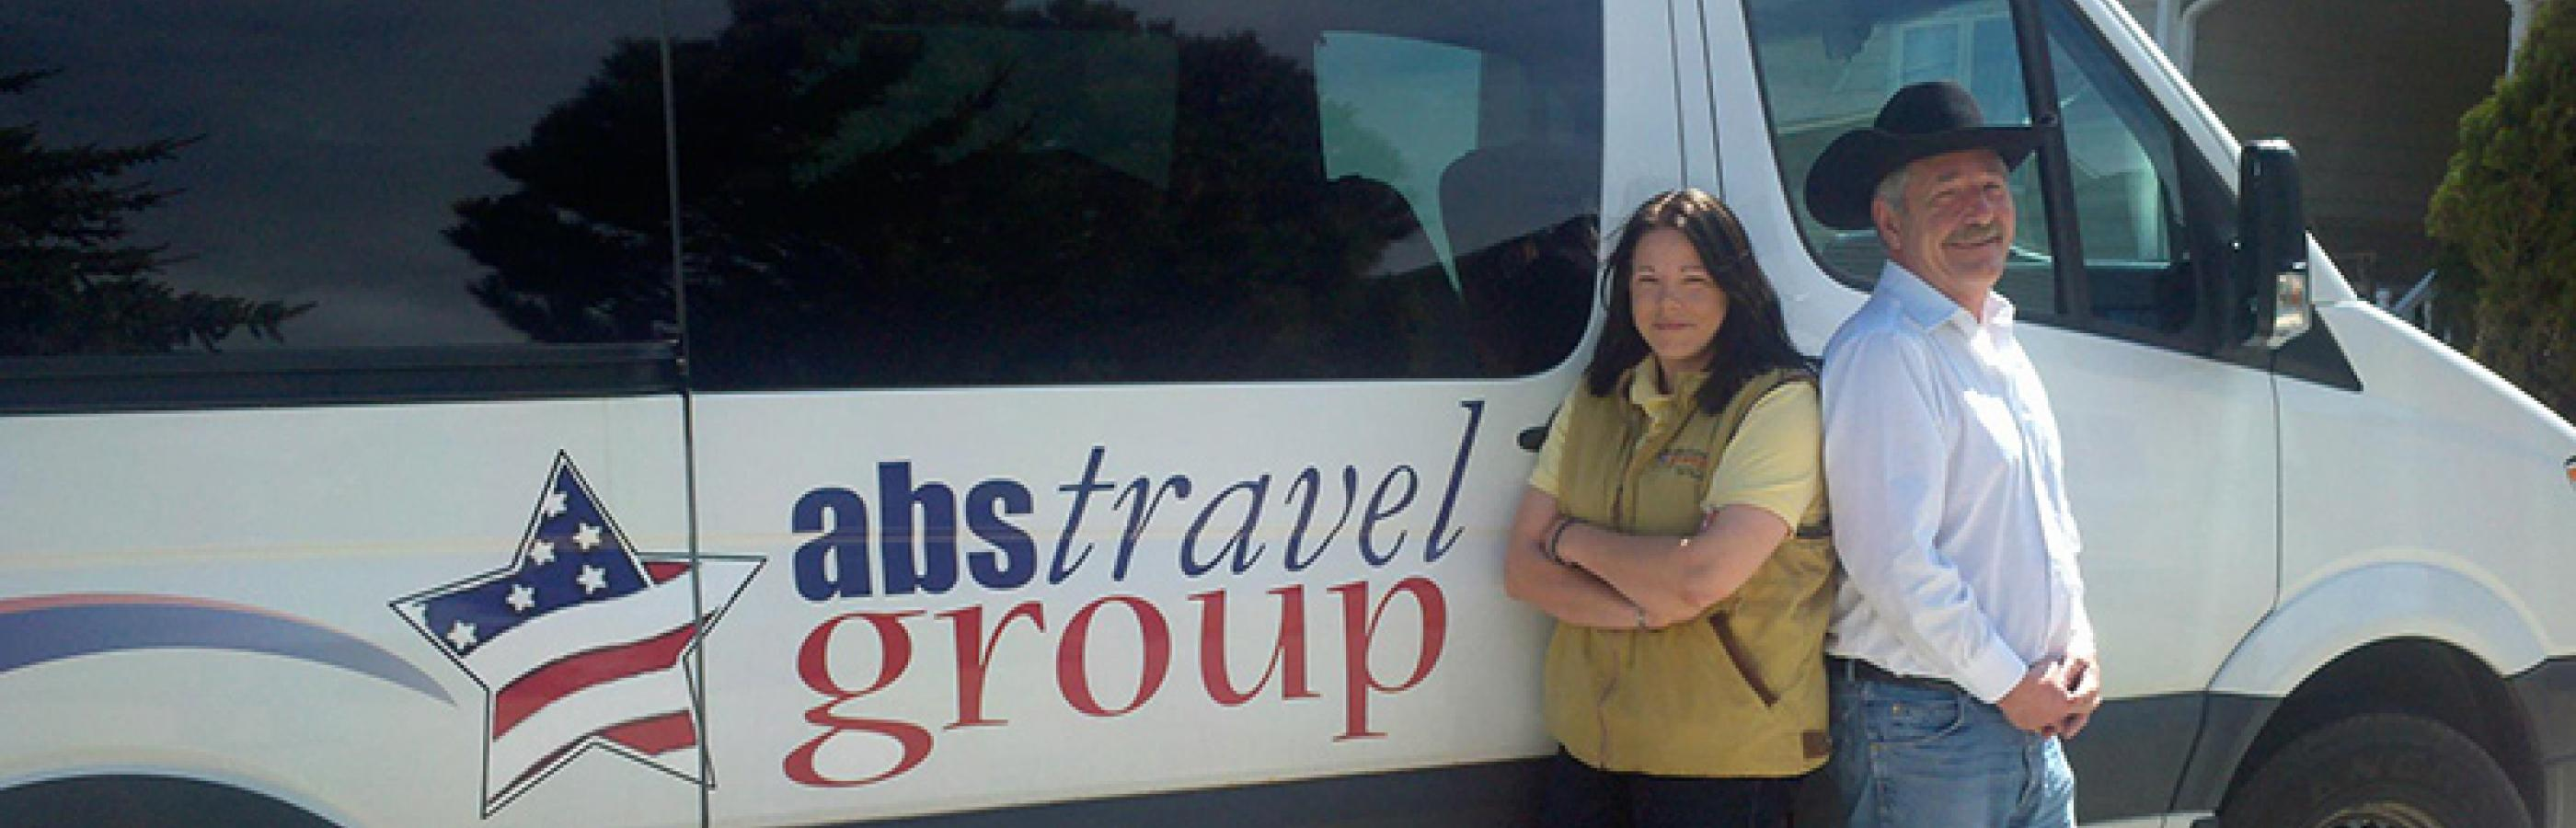 ABS Travel Group Tour Company in Rapid City South Dakota